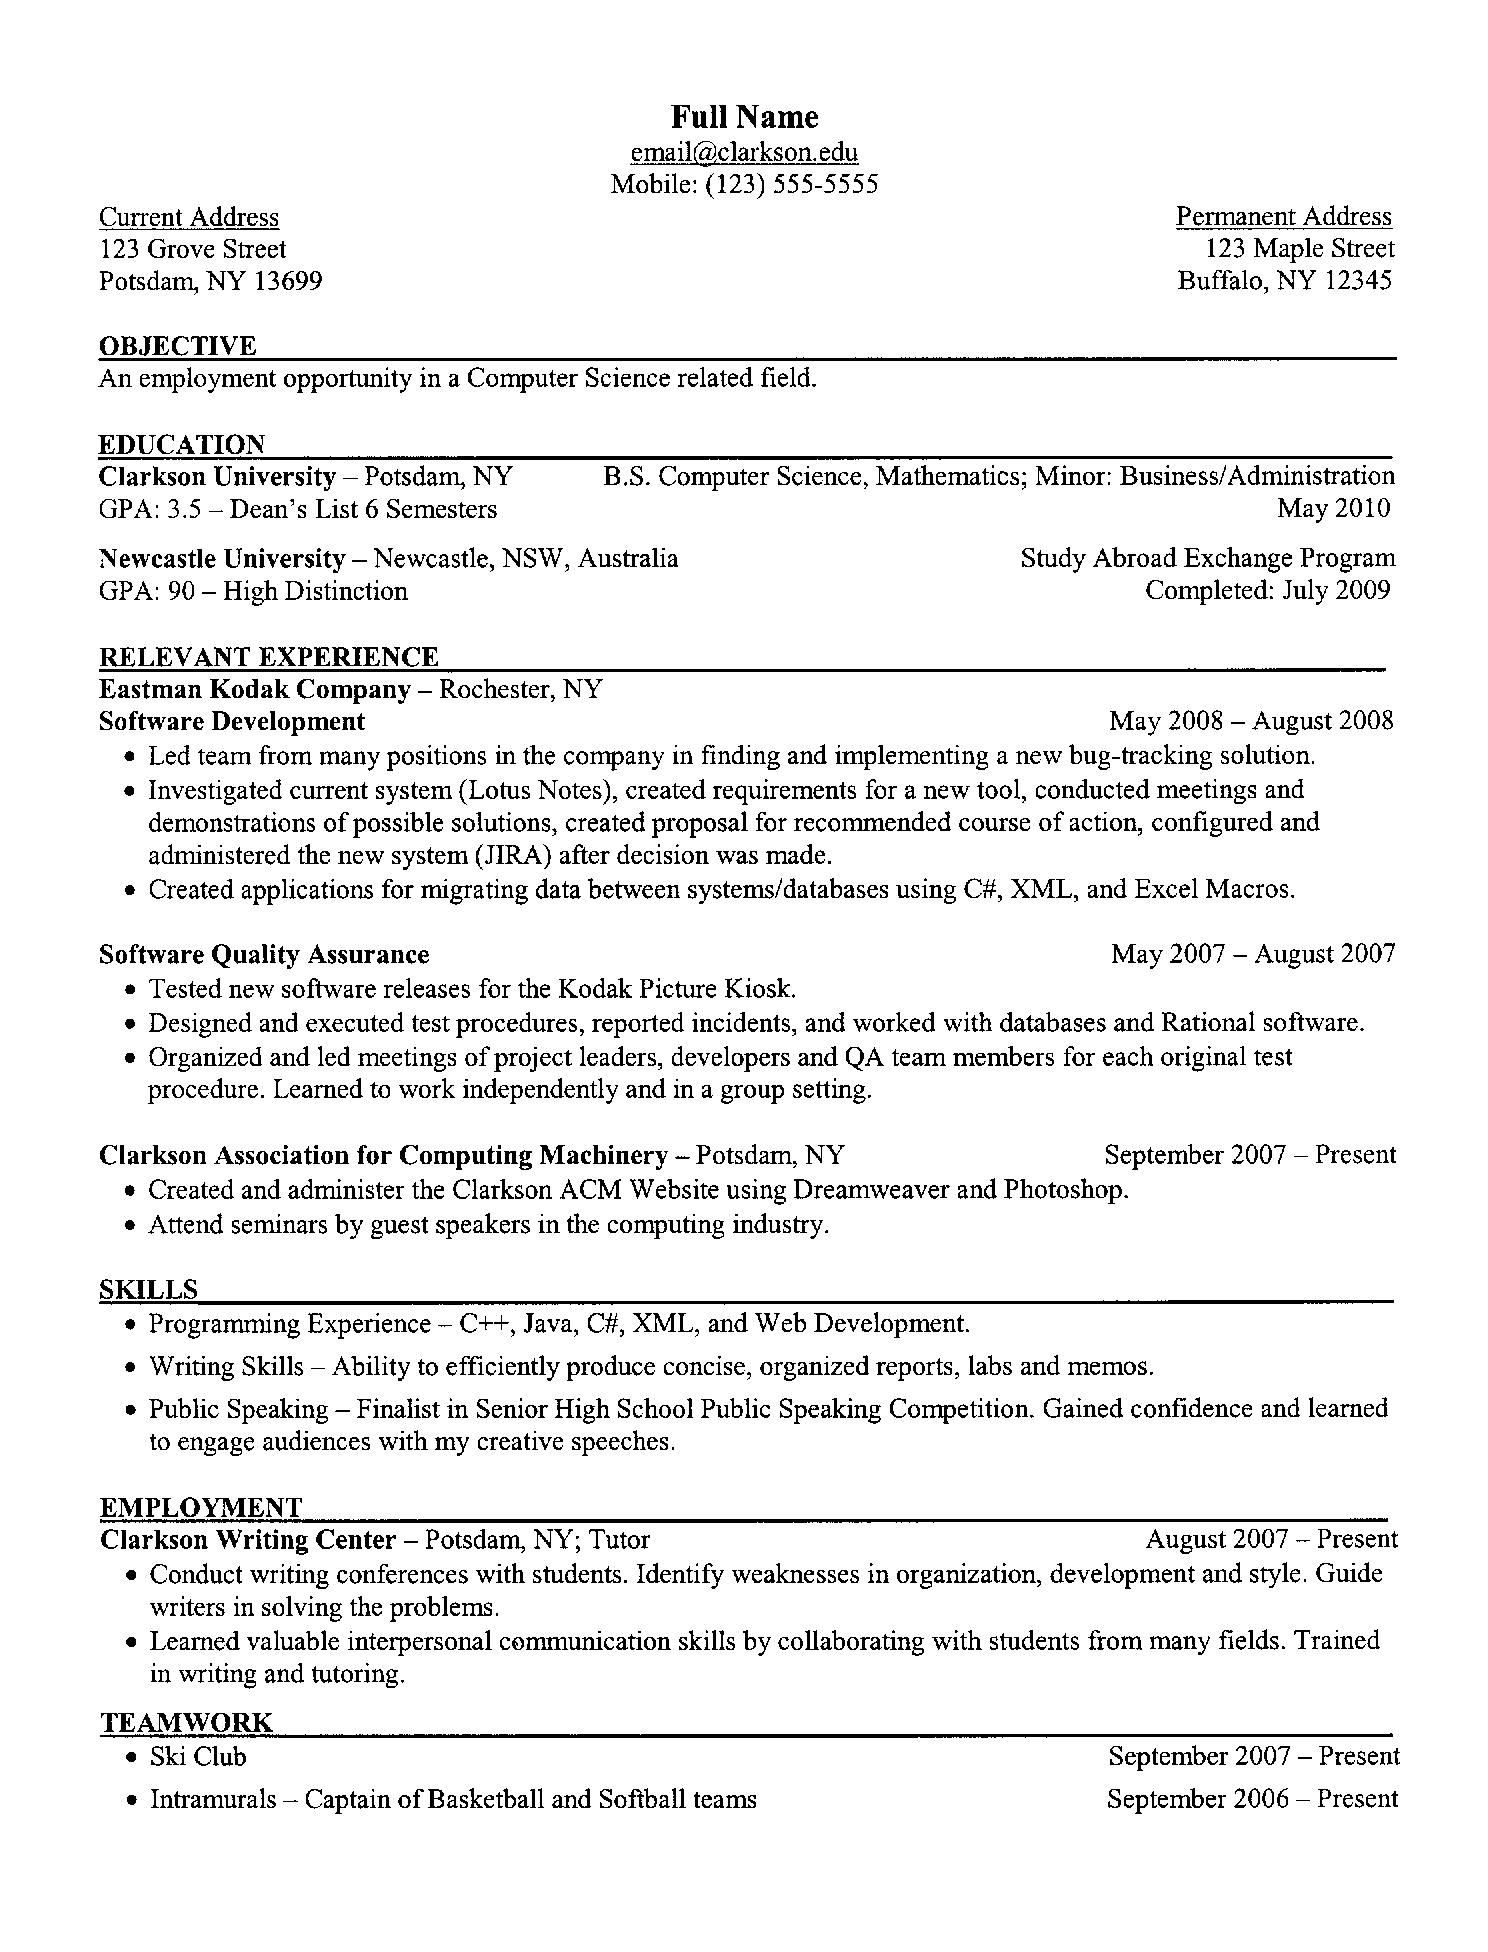 Sample Resume for Computer Science Student Computer Science Resume Example Student Resume Template, Resume ...